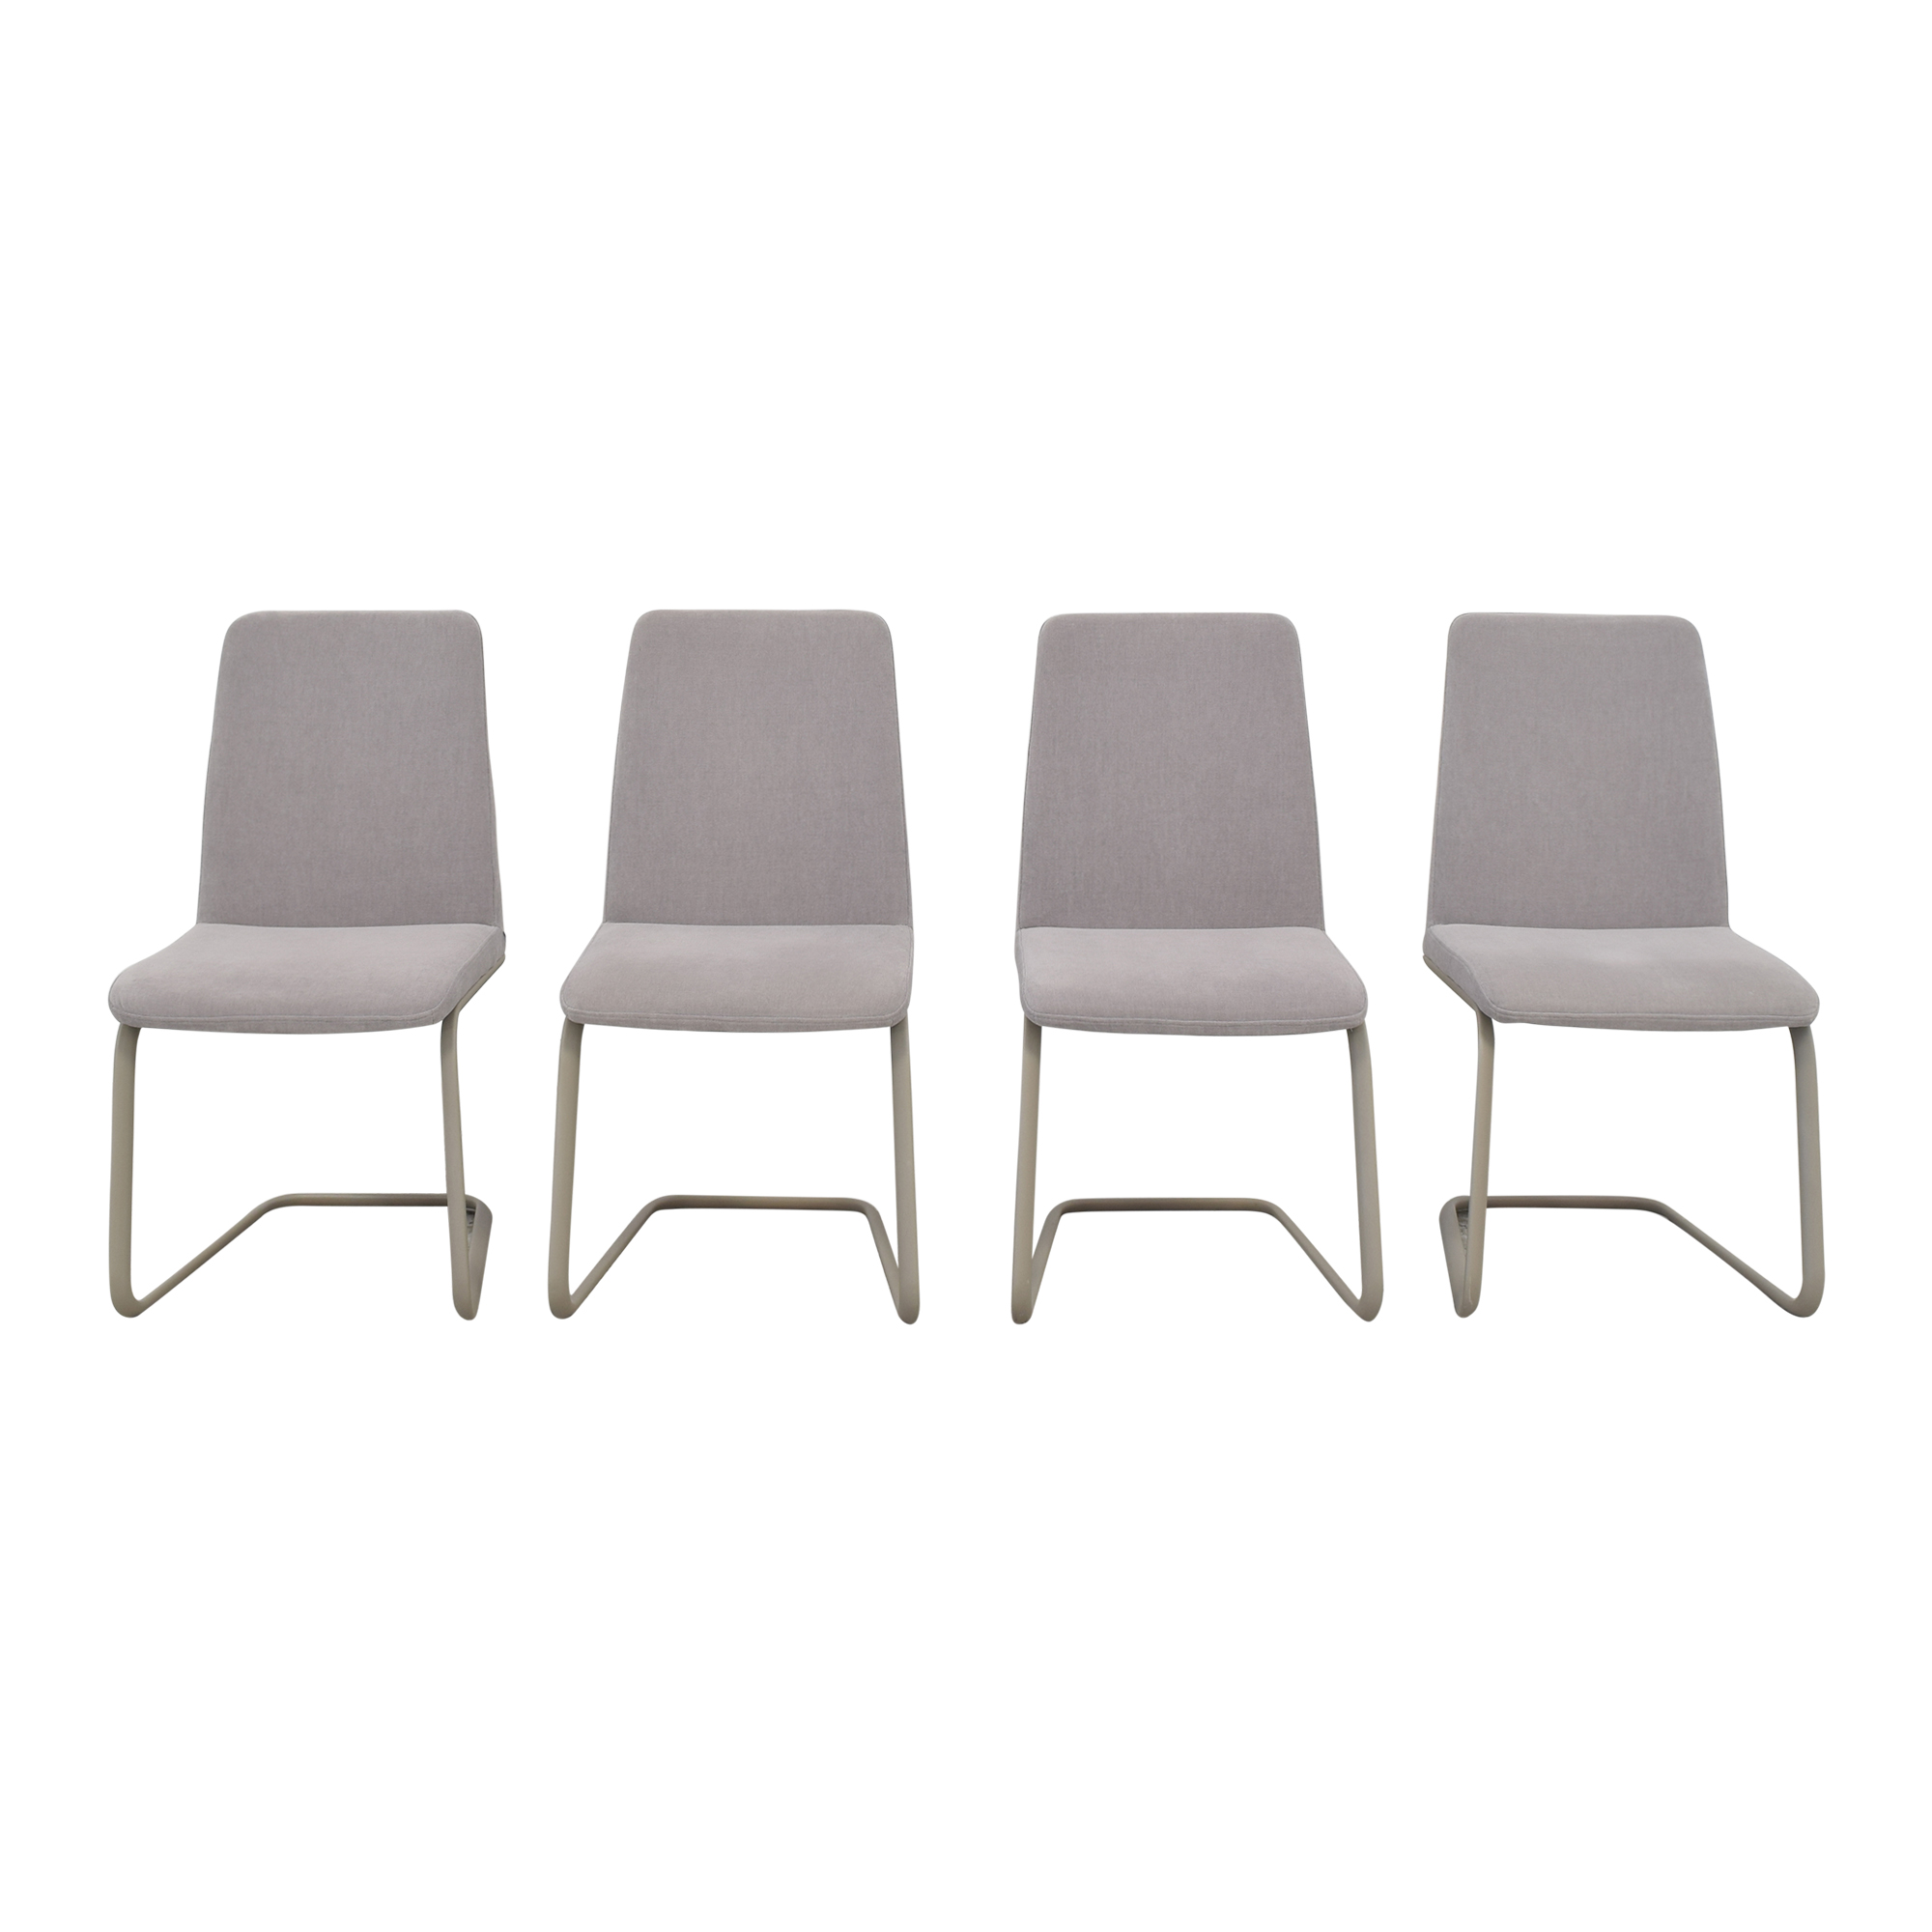 BoConcept BoConcept Lausanne Dining Chairs nyc